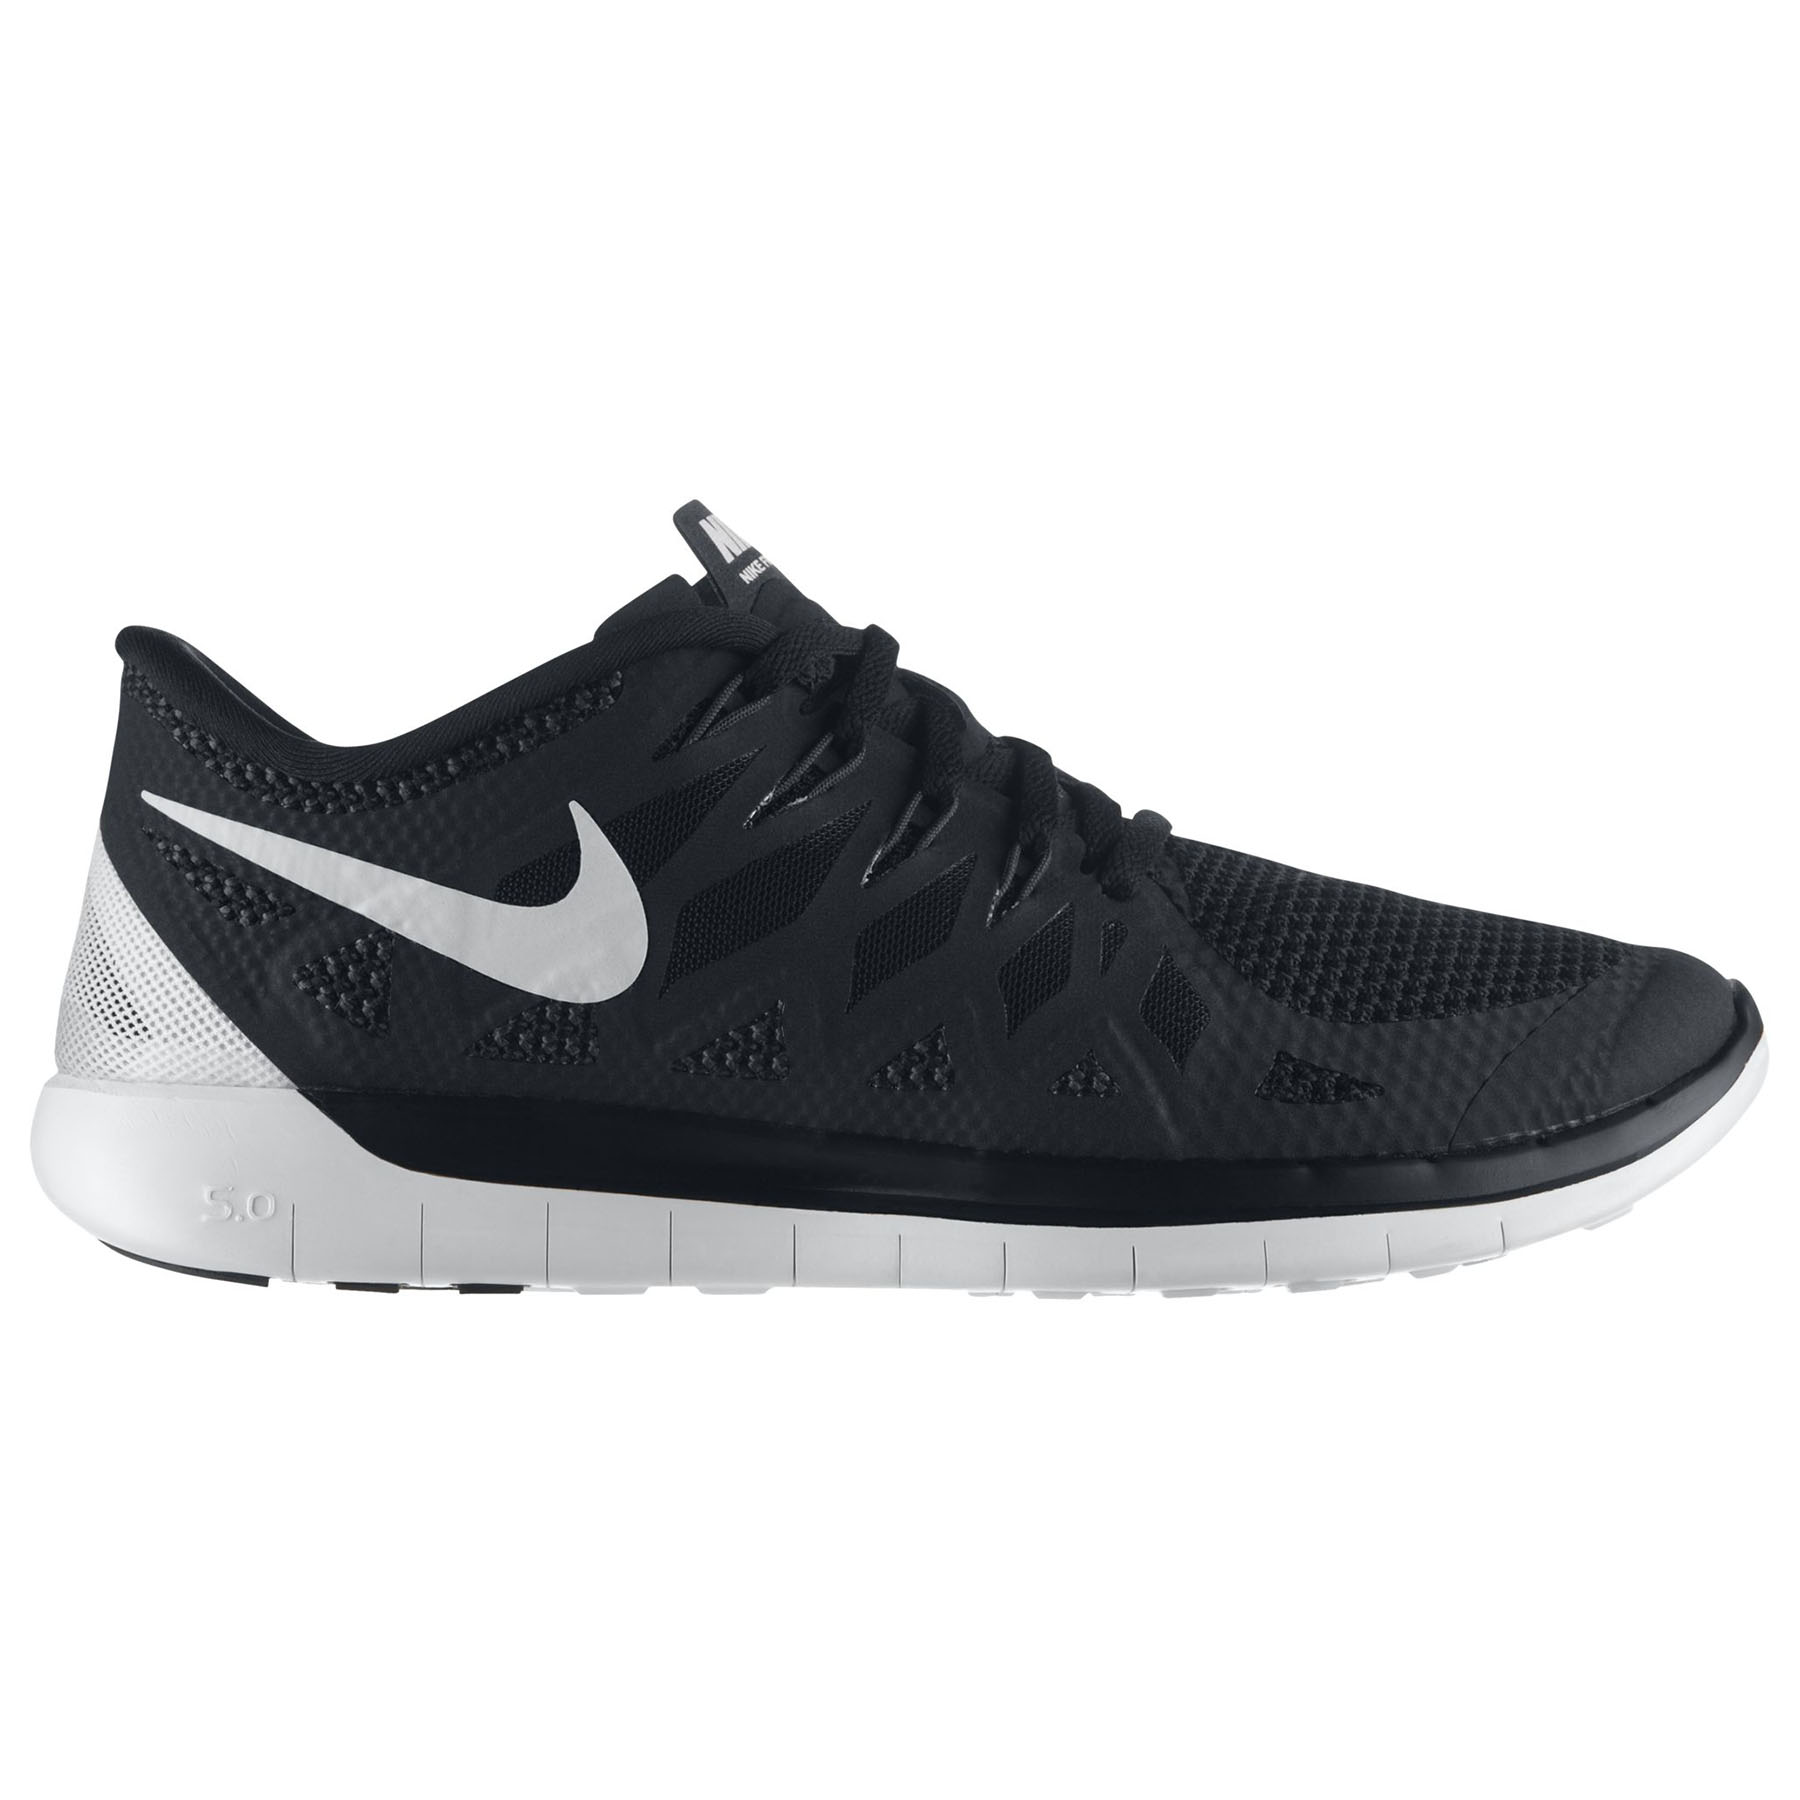 Nike Free 5.0 14 Trainers Black